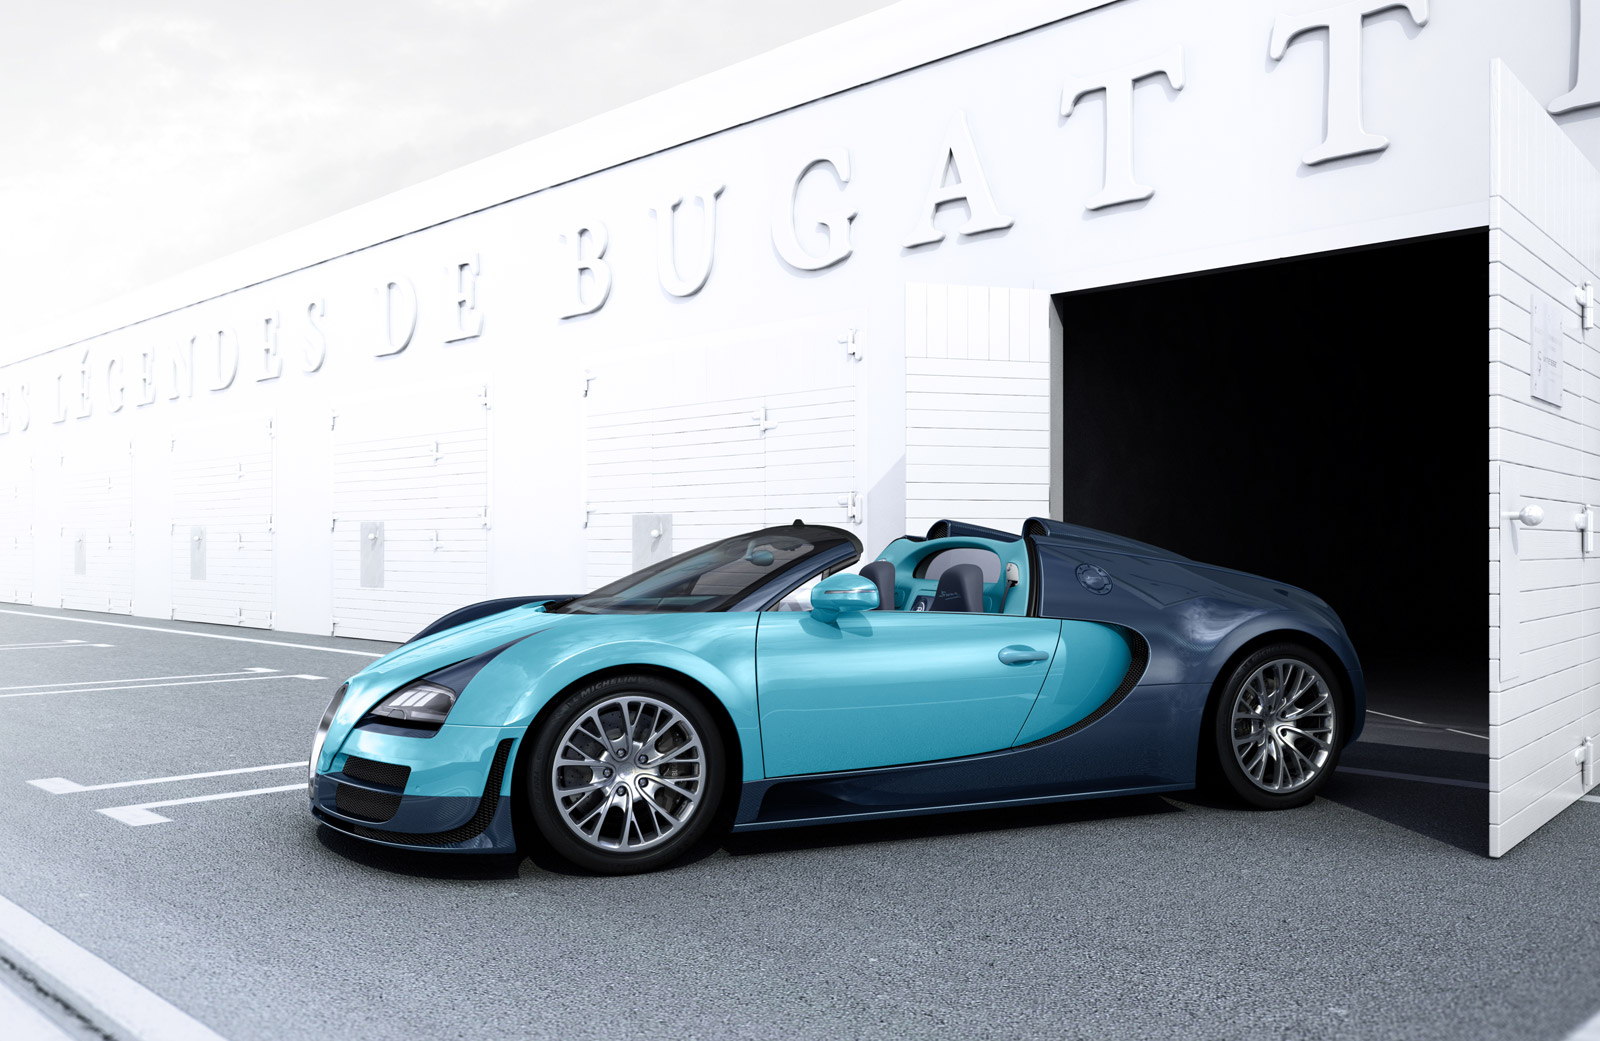 400th bugatti veyron sold is a legend 39 jean pierre wimille 39 grand sport vitesse. Black Bedroom Furniture Sets. Home Design Ideas